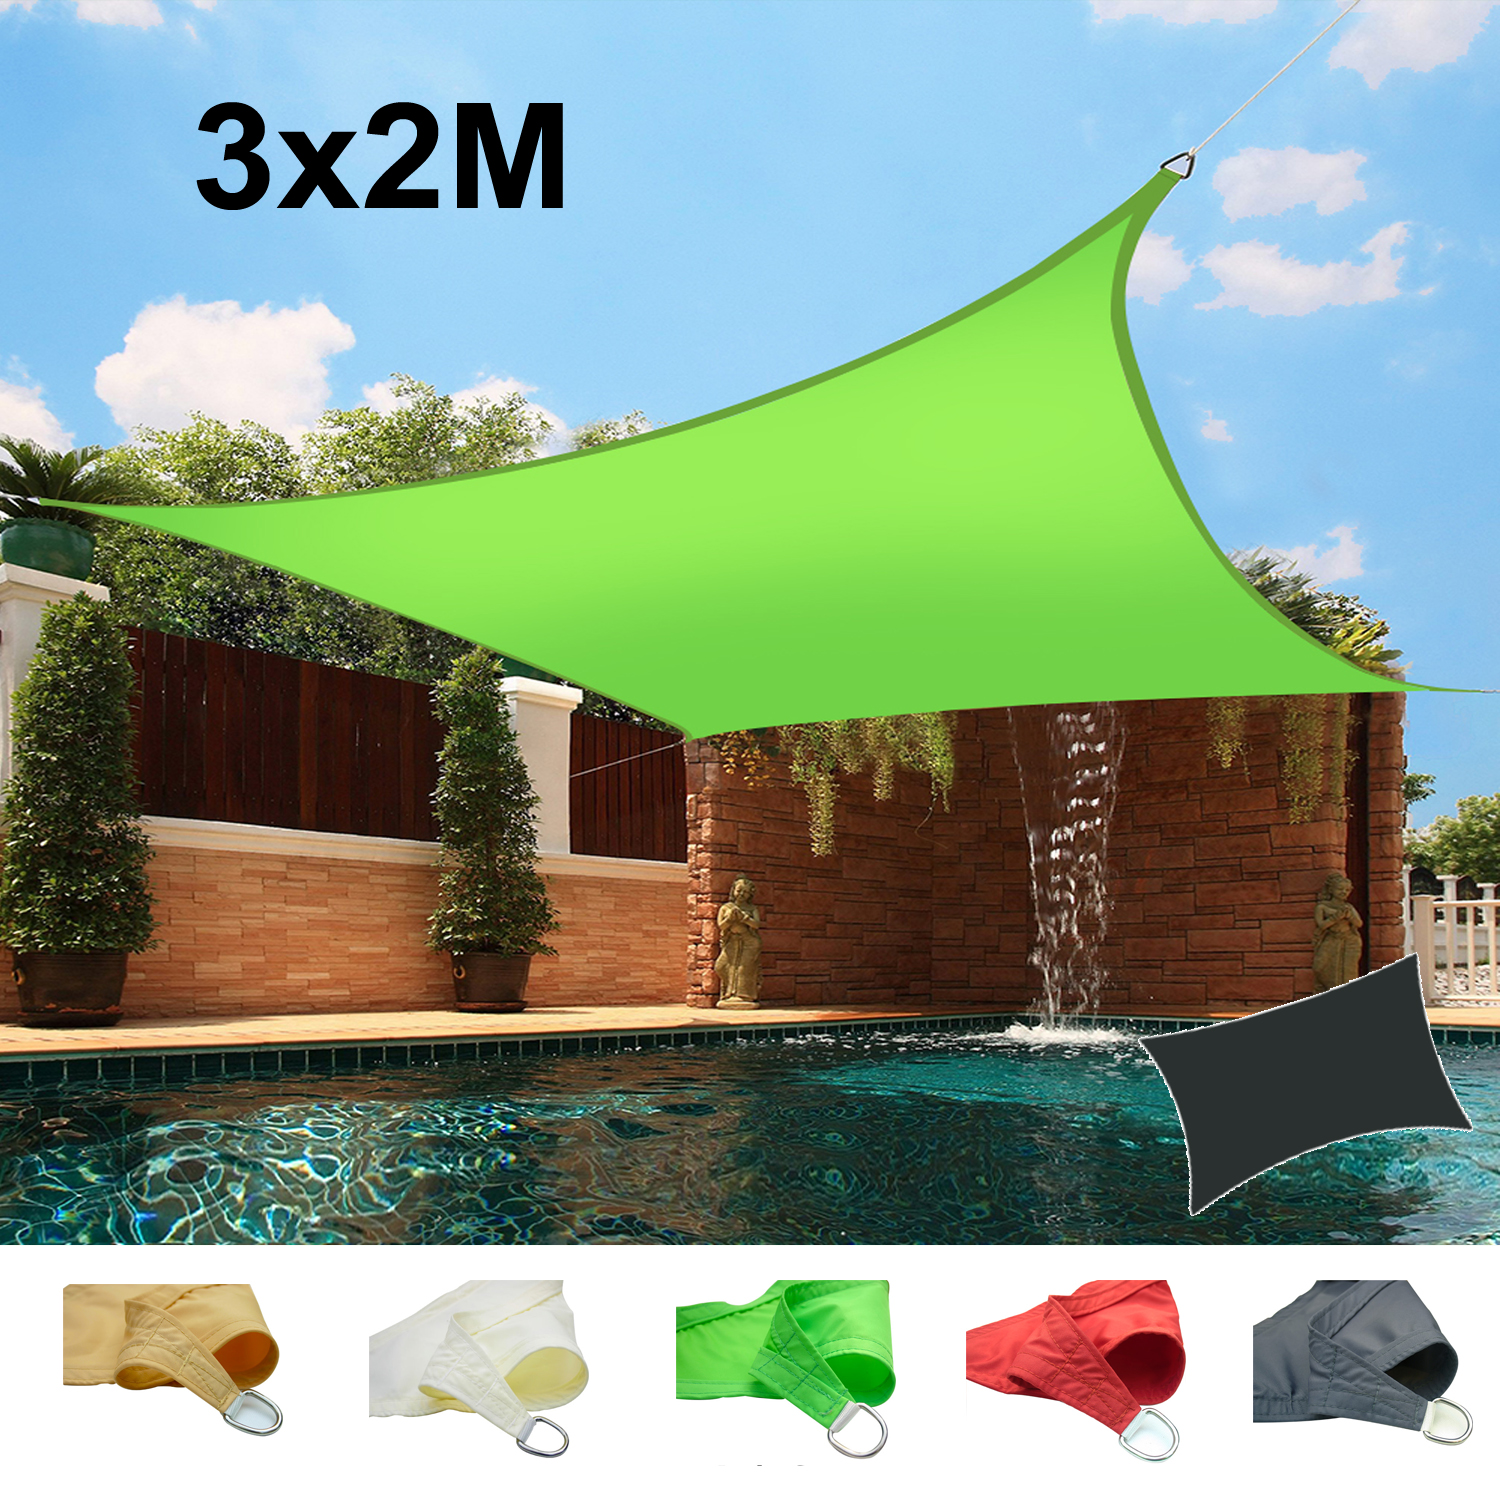 3m X 2m Sun Shade Sail Garden Patio Awning Canopy Screen